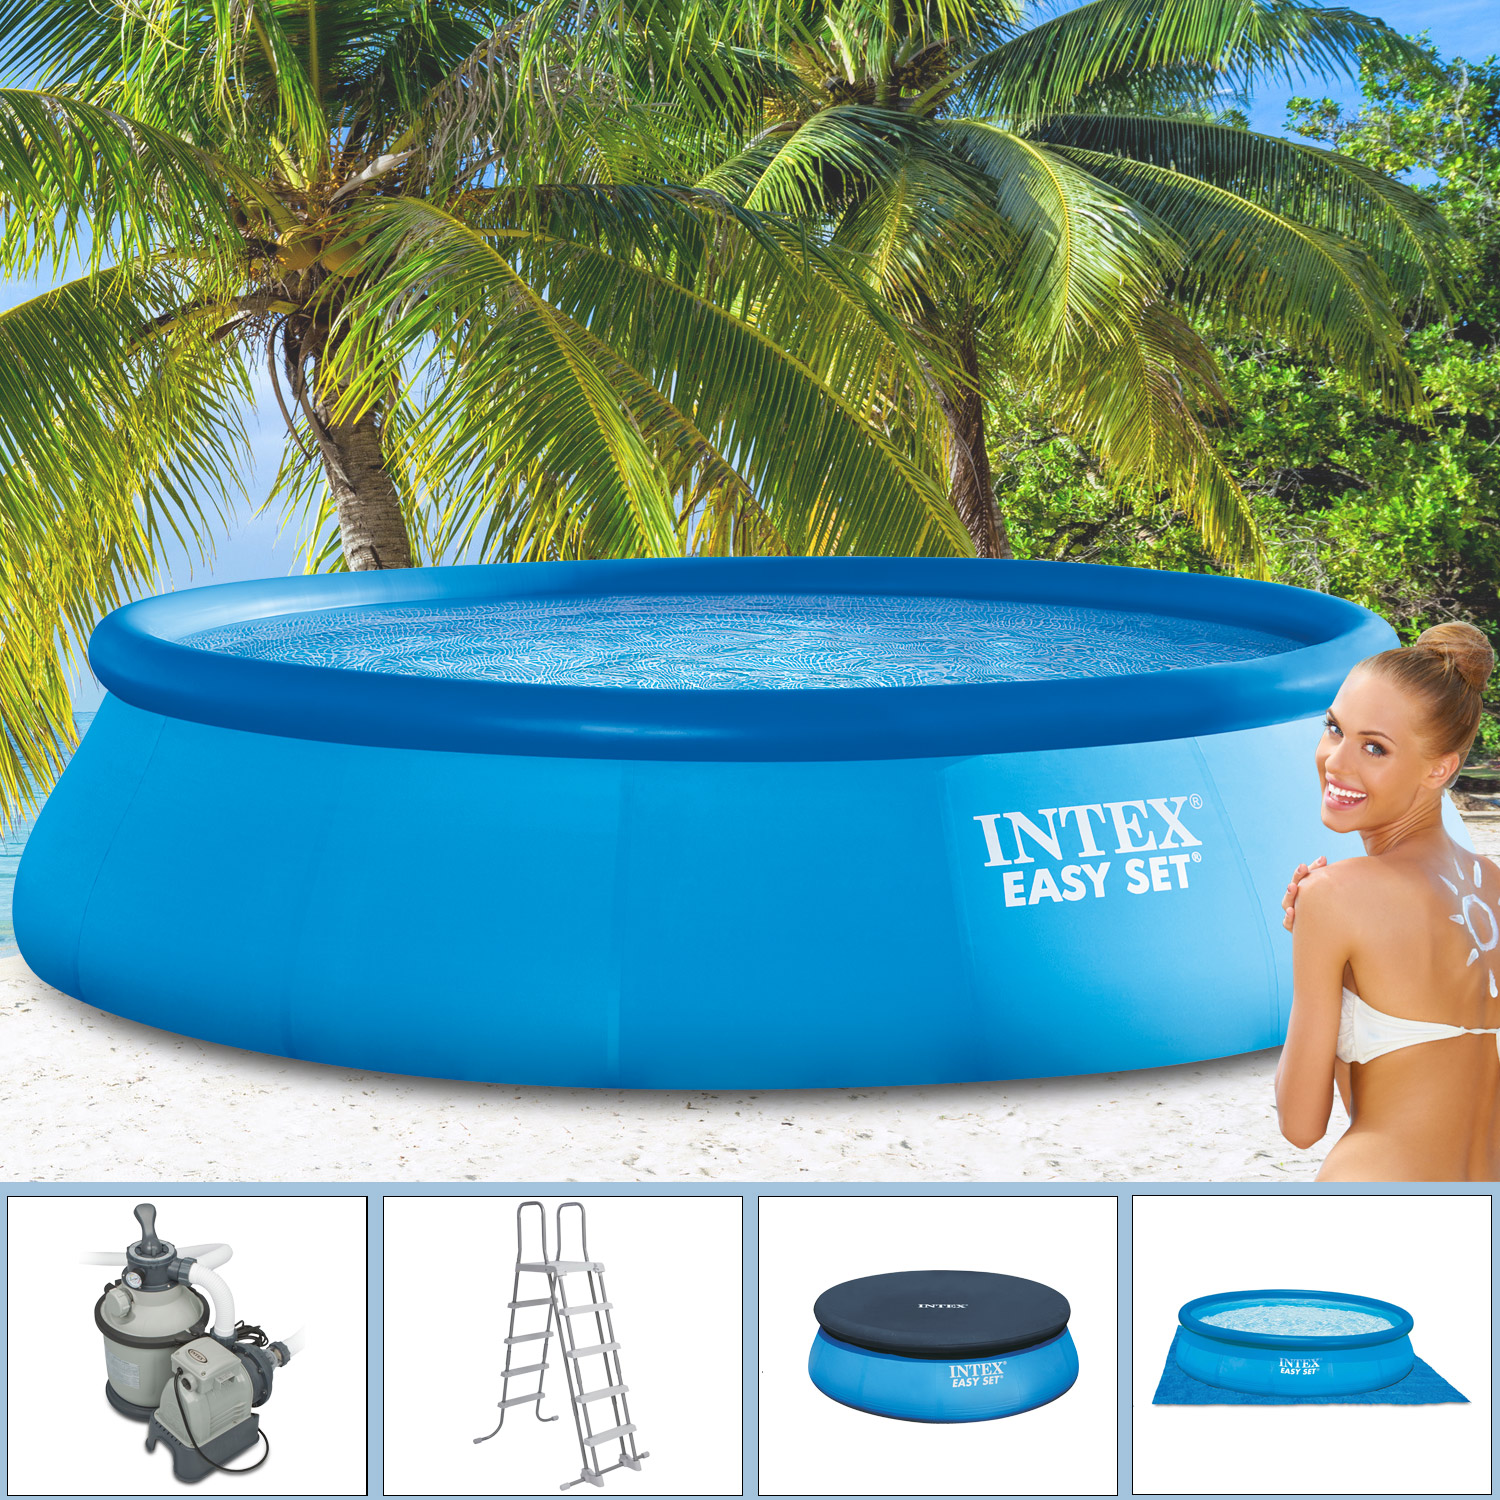 Intex piscine 457x122 avec filtre sable bassin piscine - Temps de filtration piscine ...